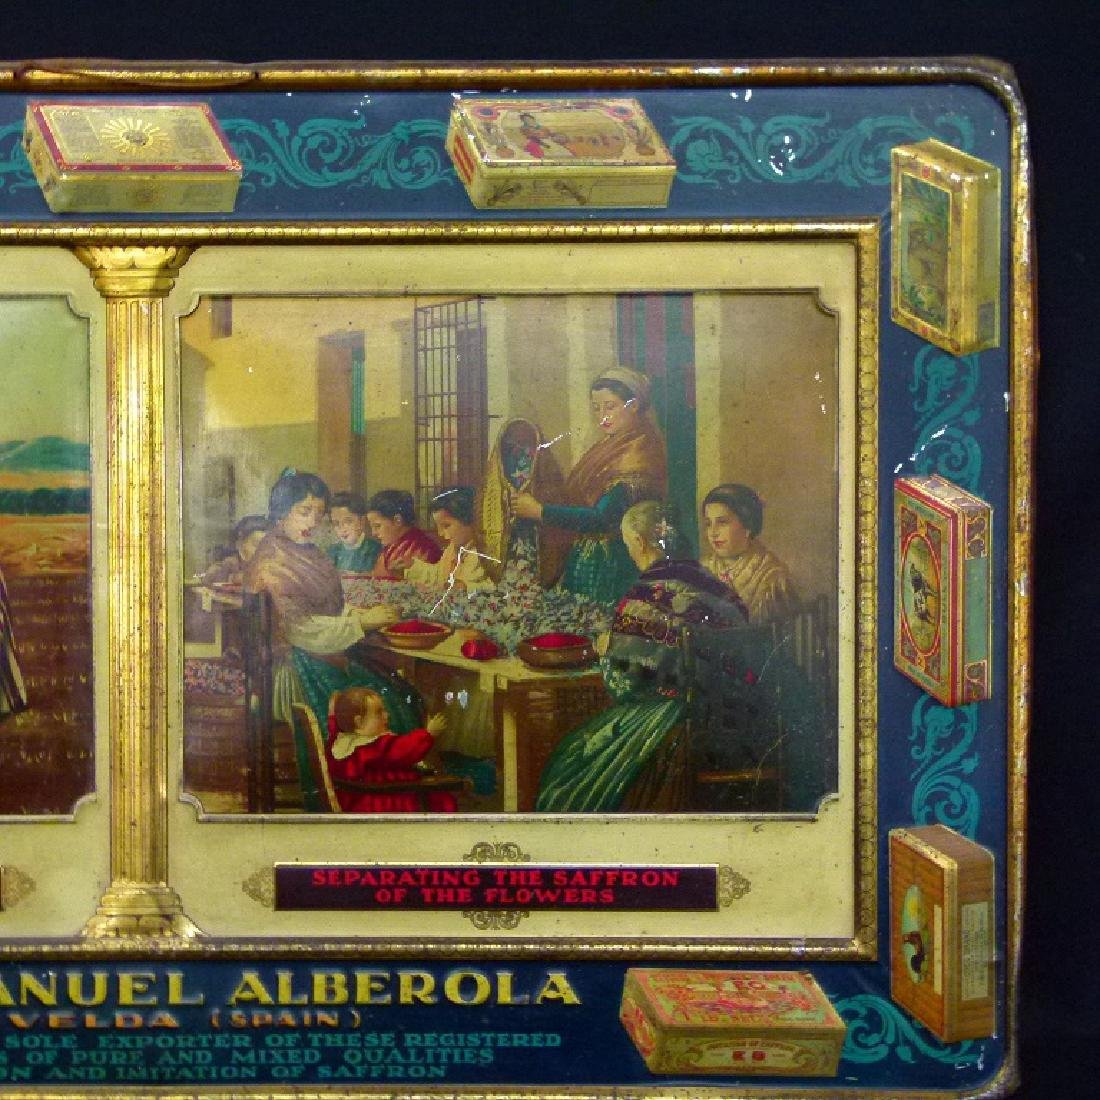 SPANISH LITHO TIN ADVERTISING SIGN, 19TH C. - 3